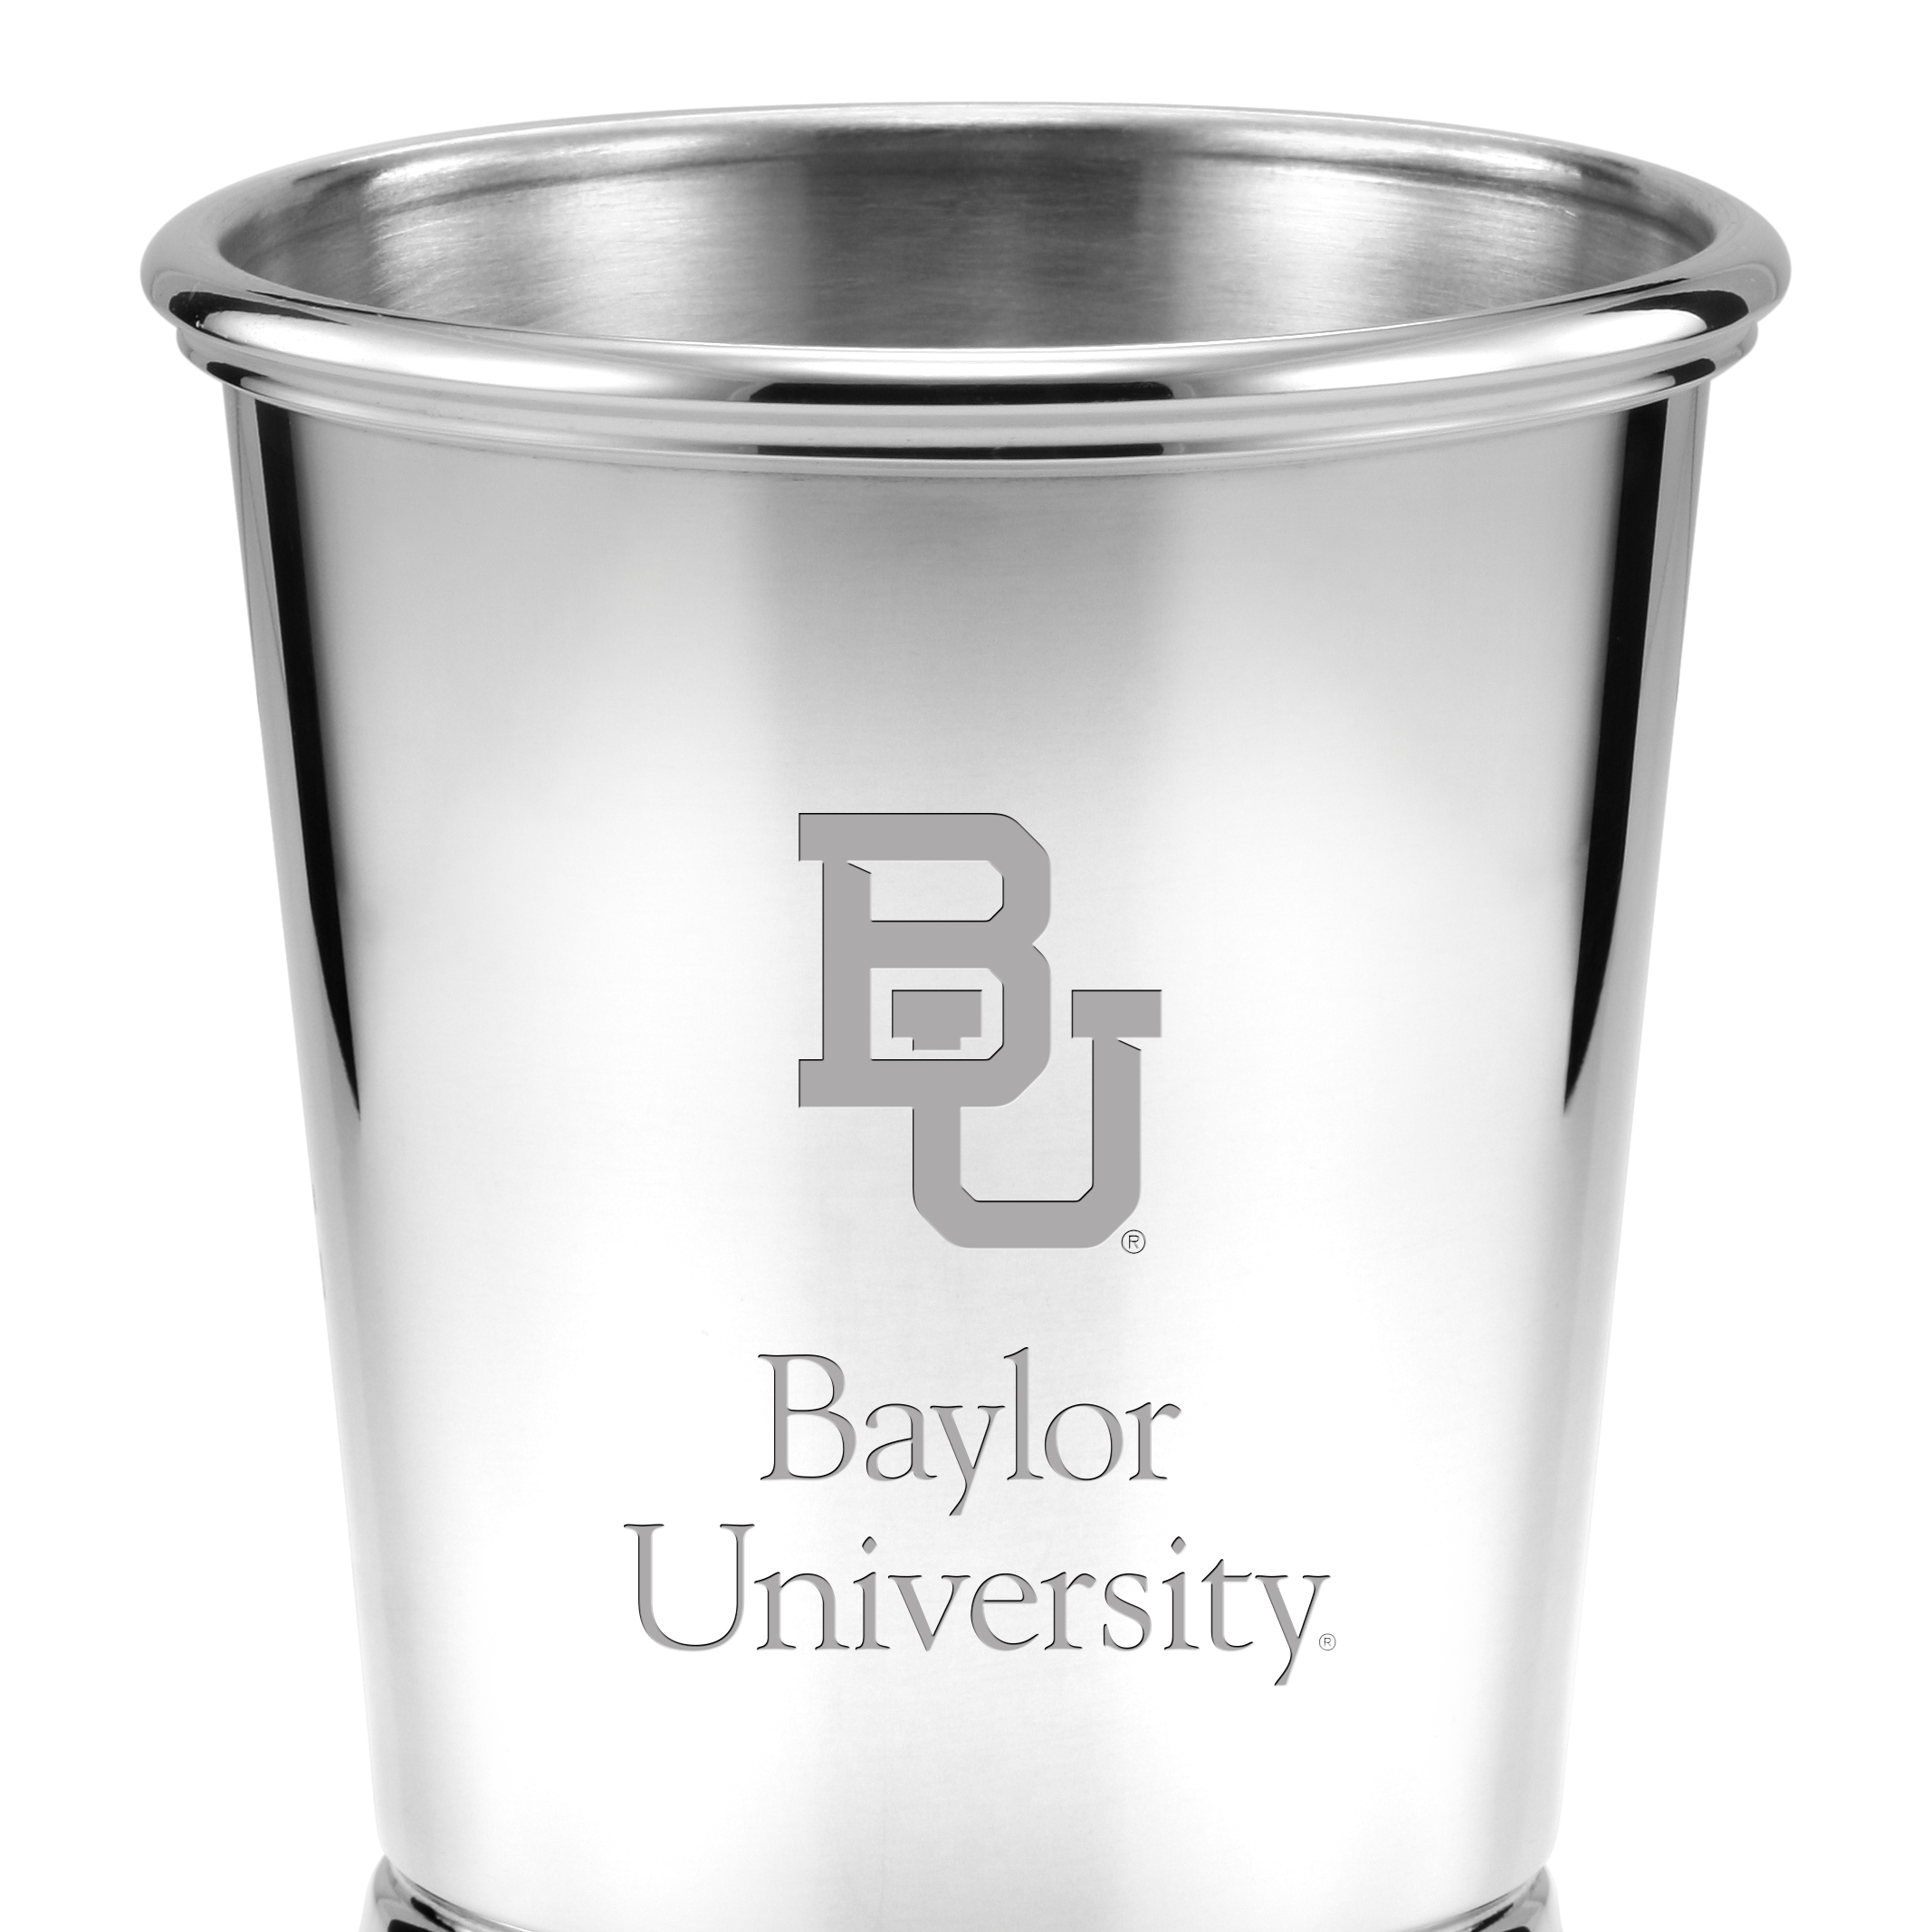 Baylor Pewter Julep Cup